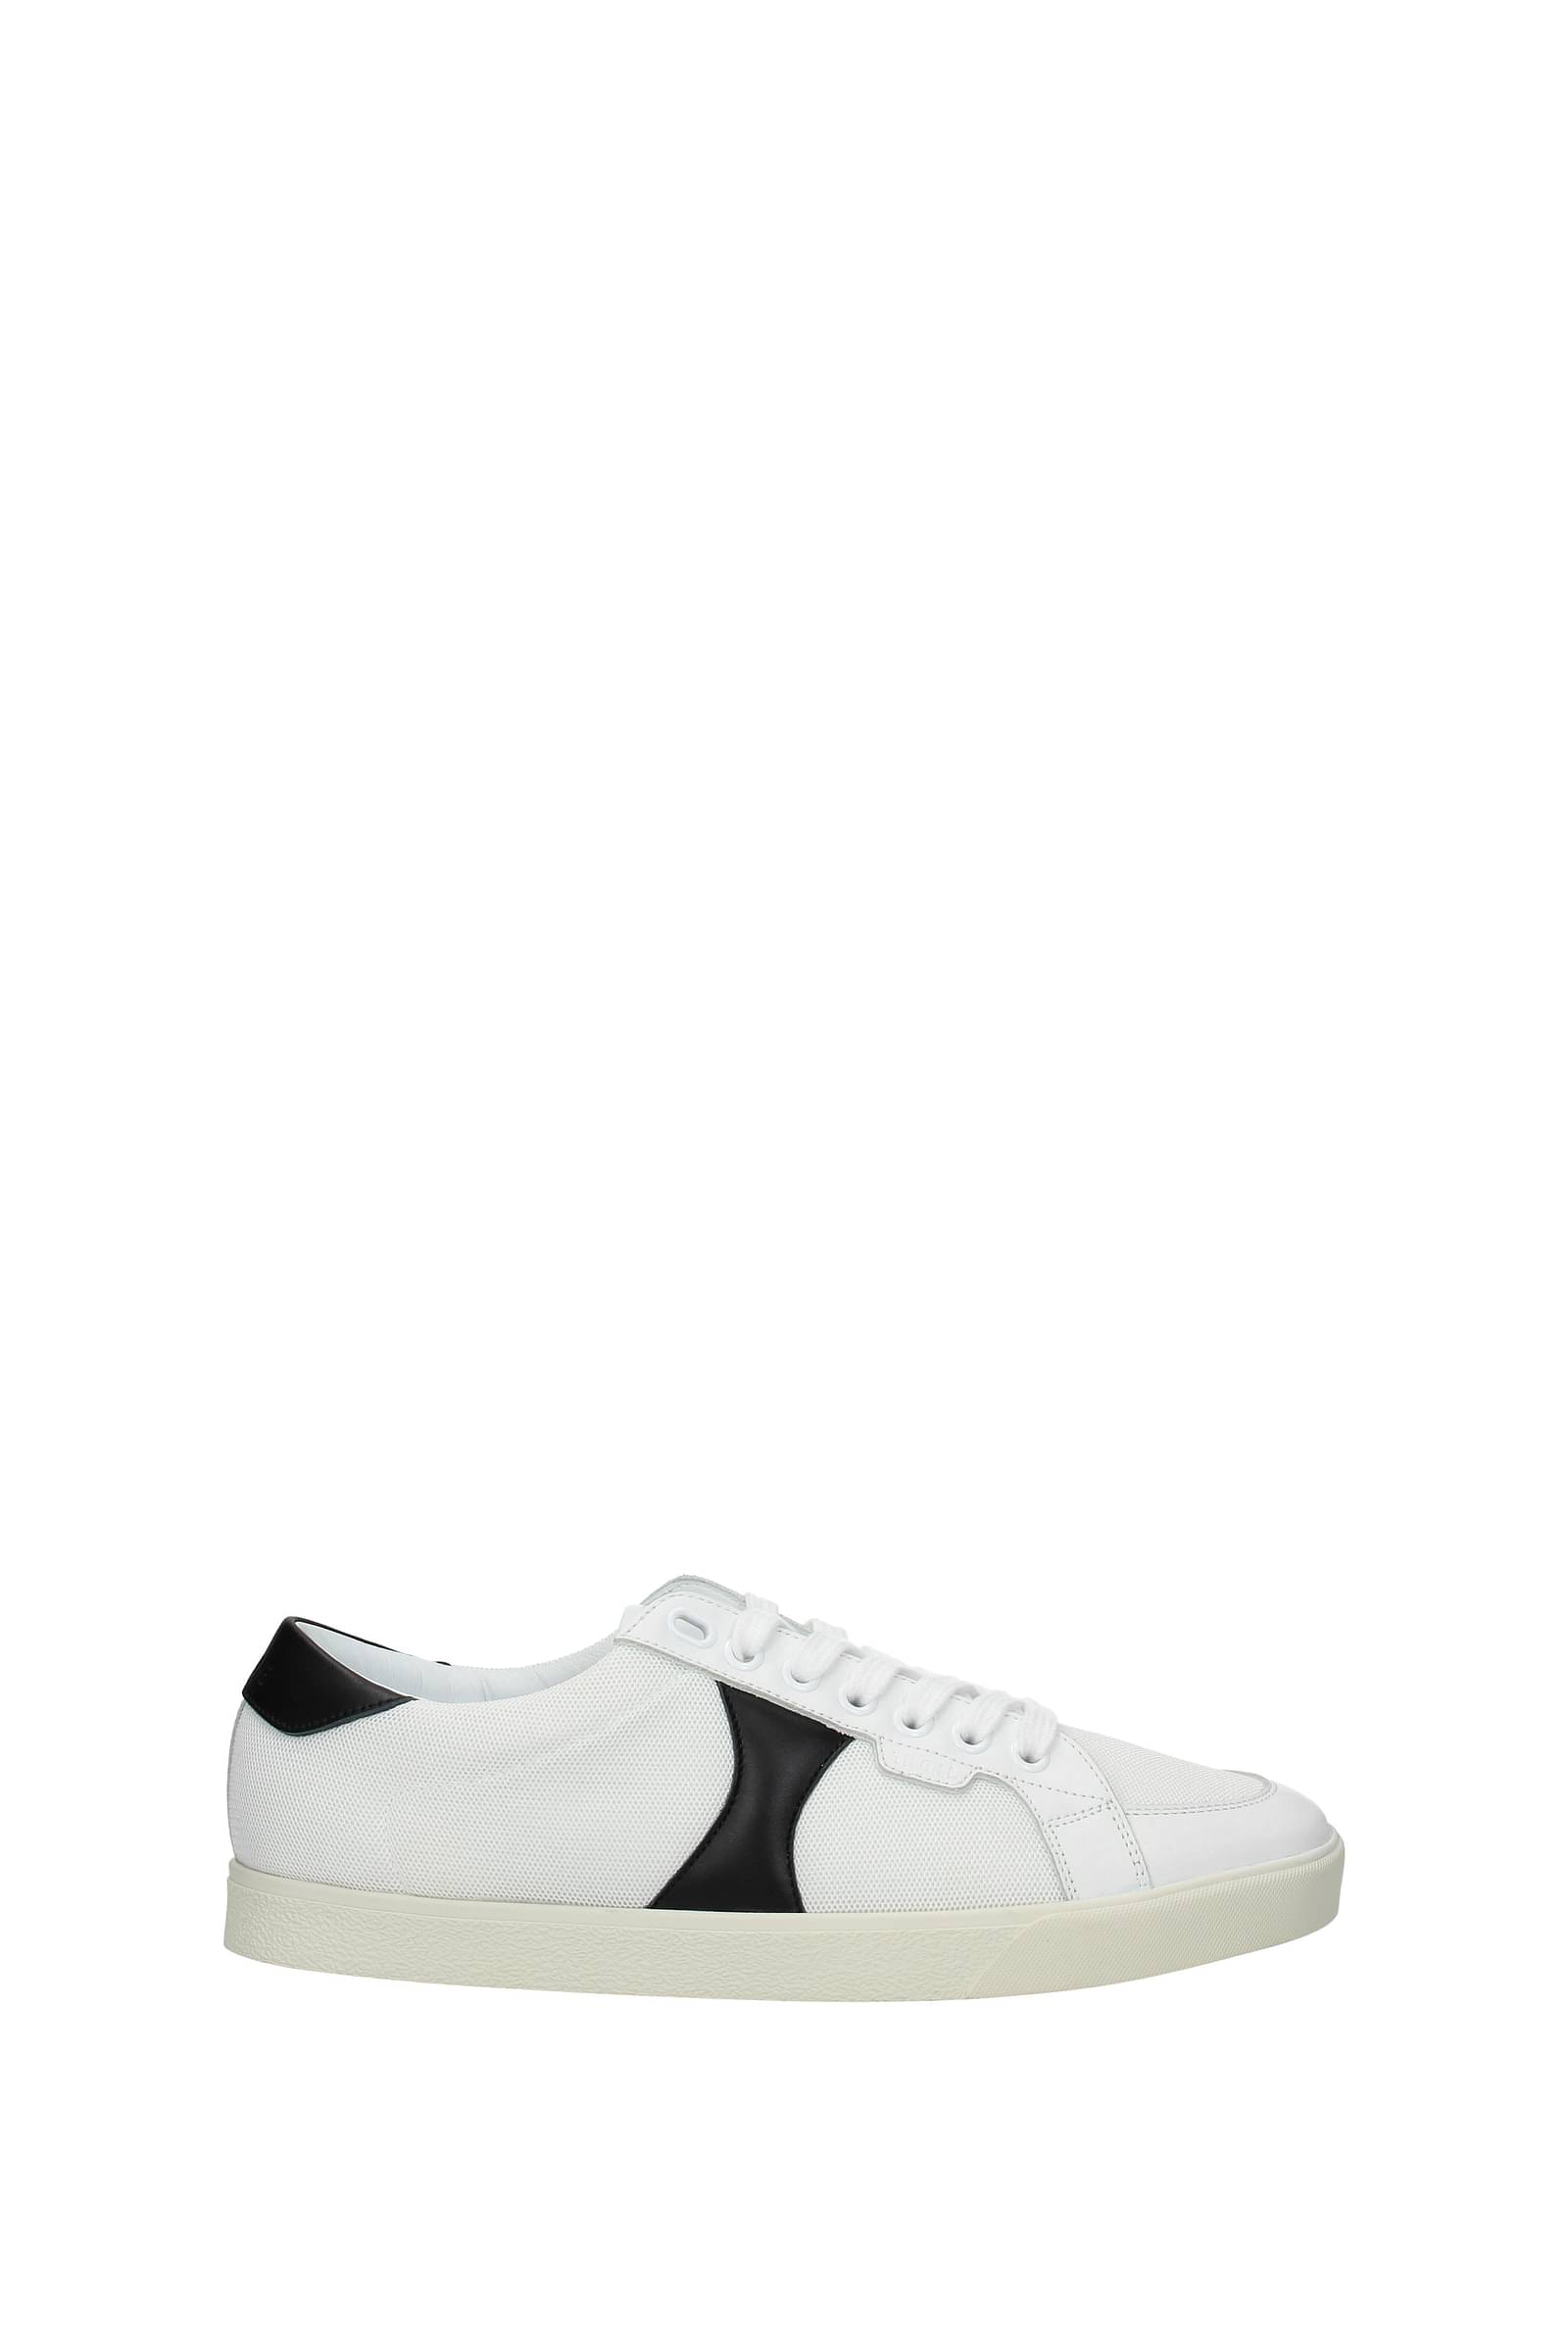 Celine Outlet: shoes on sale up to -60